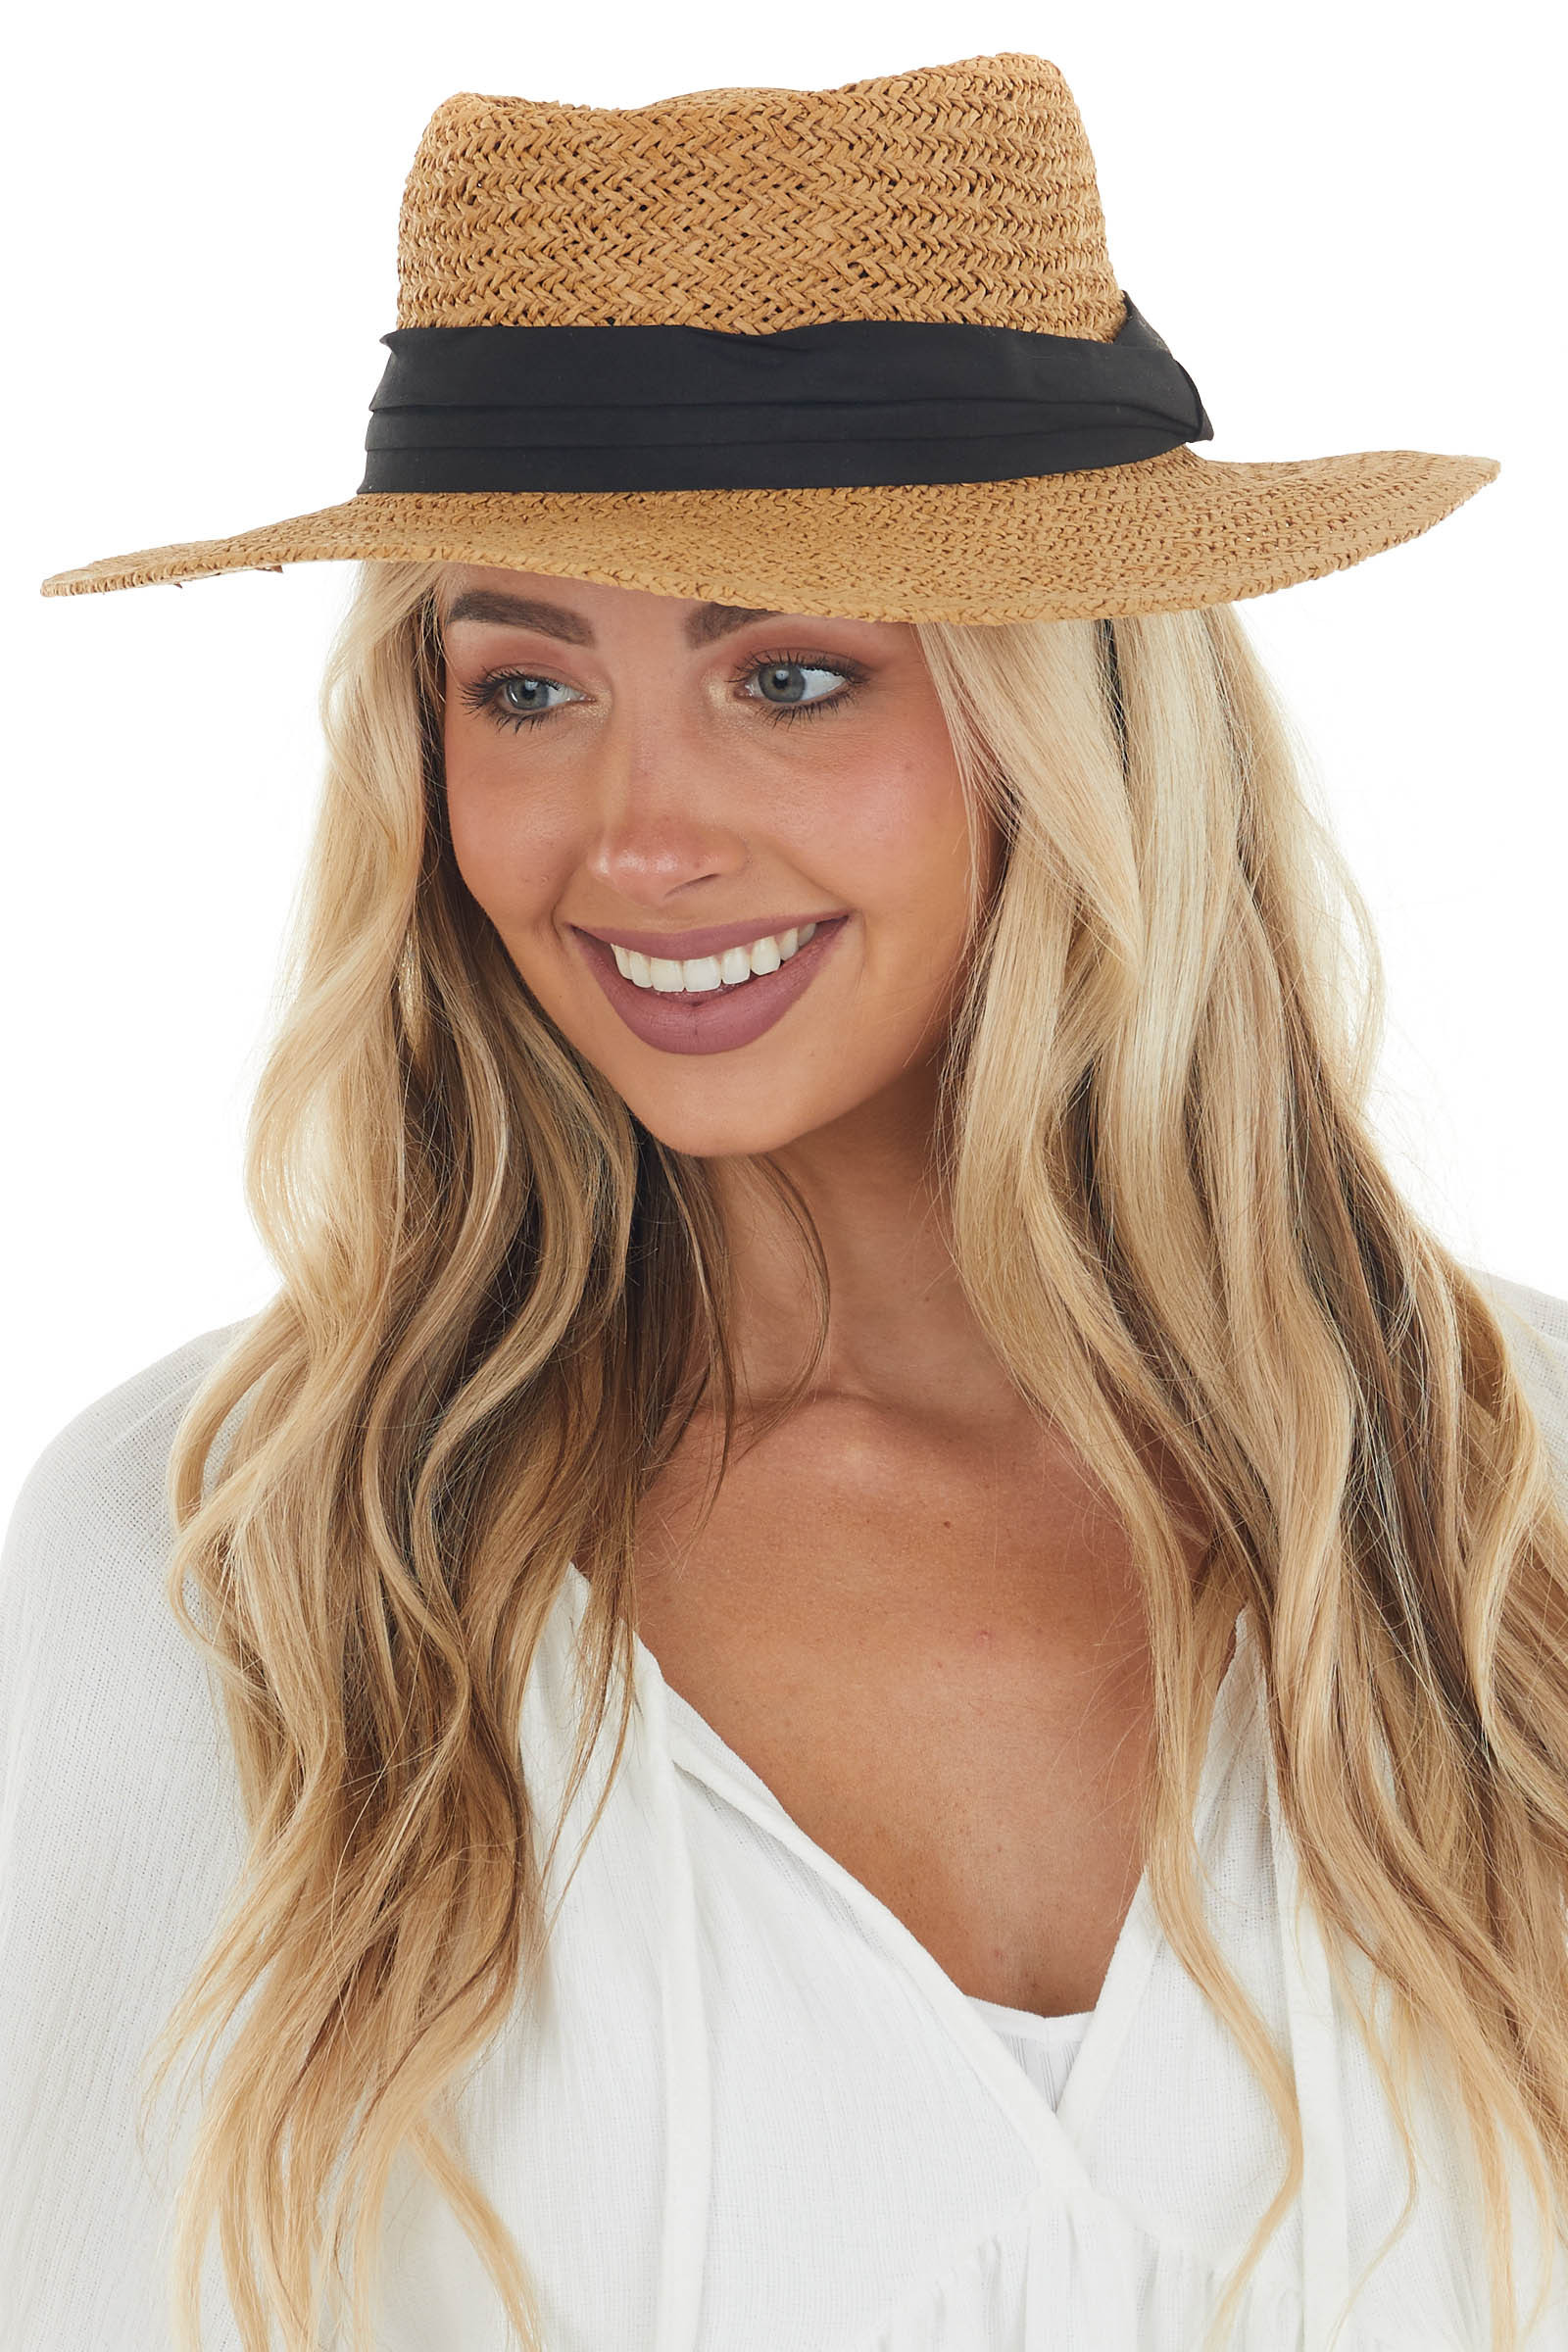 Camel Straw Boater Hat with Black Band